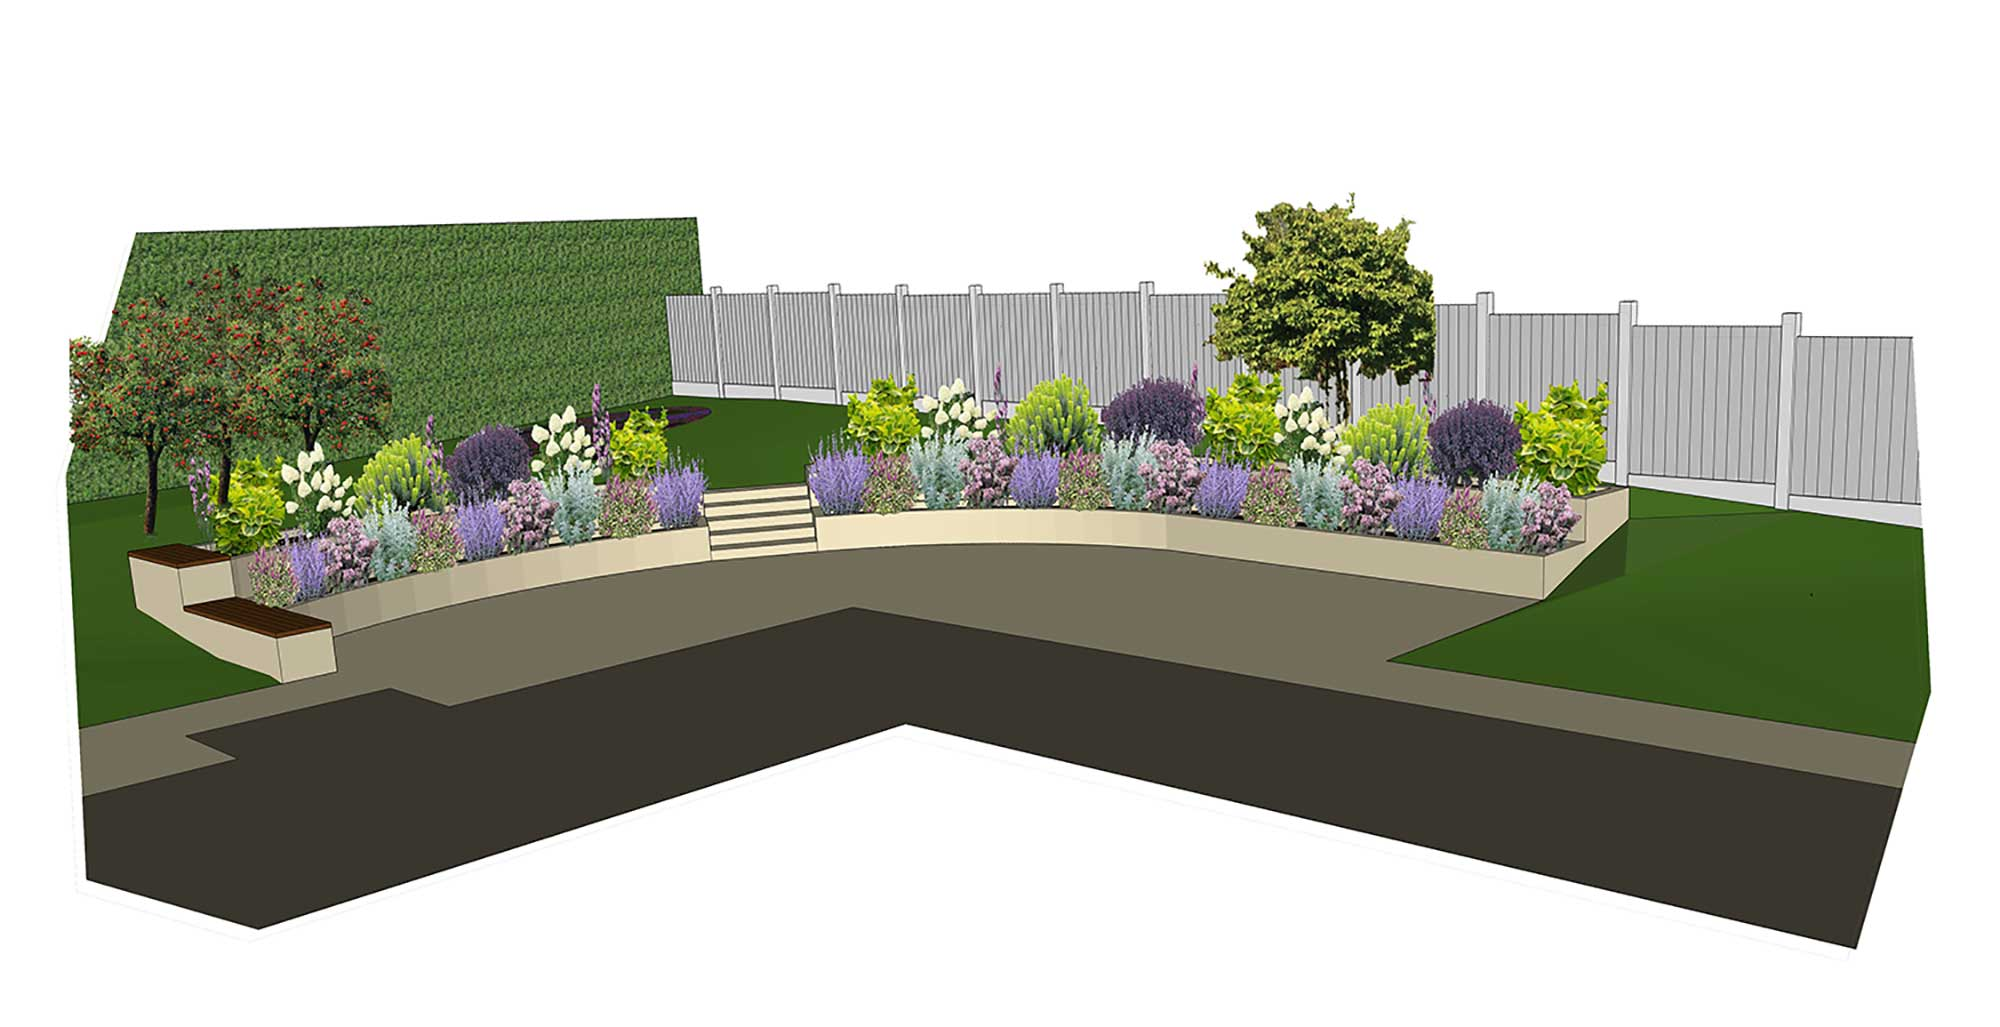 Rear Garden Design Visualisation - Garden Design Layout - Garden ...